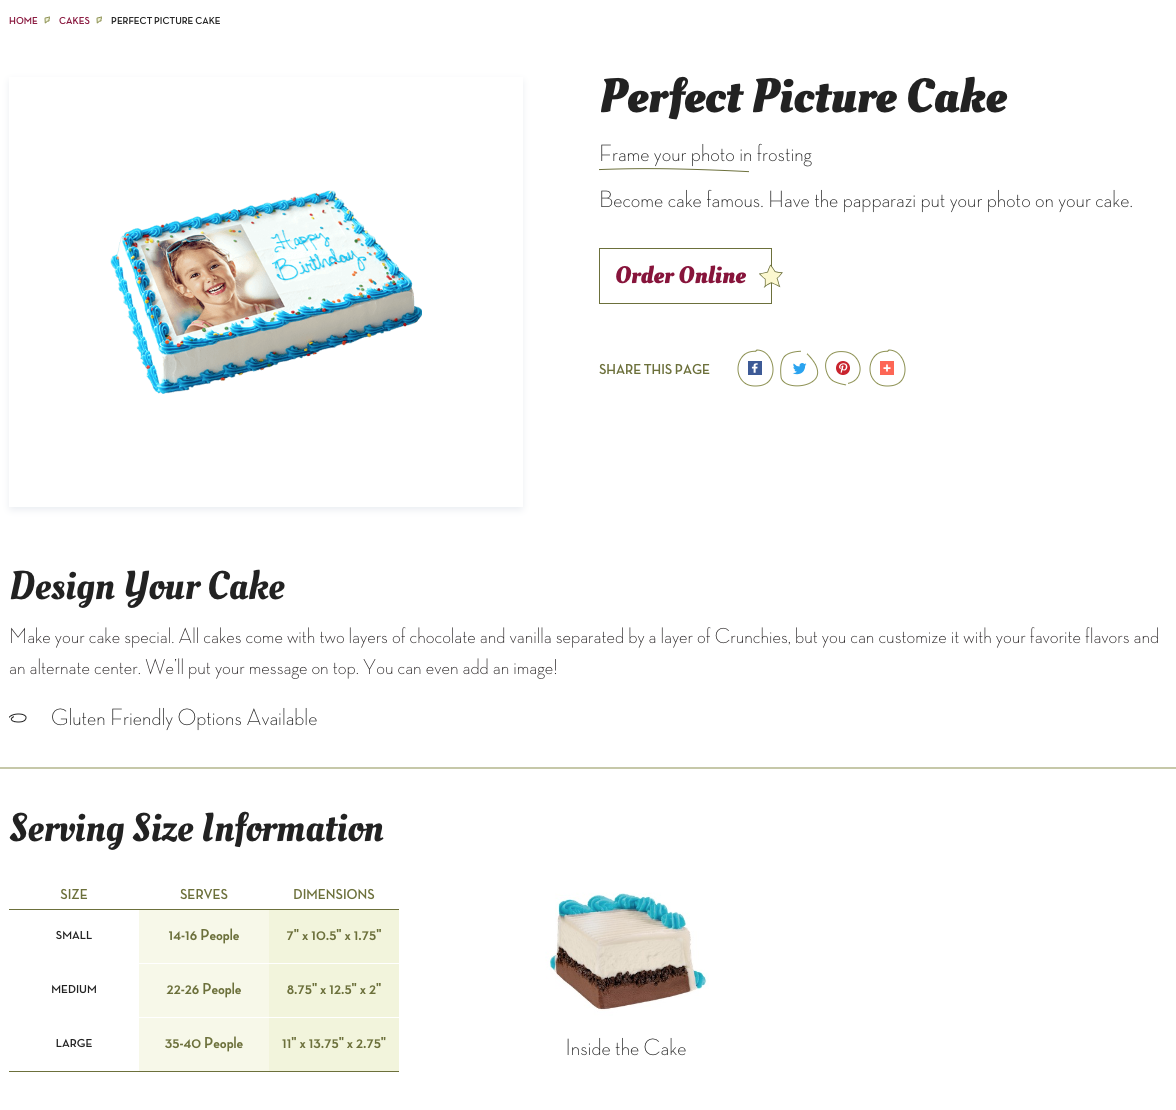 Cake Detail PAge - We were included allergen friendly options, serving size information, and the dimensions for customers to know if they could fit the cake in their freezer.